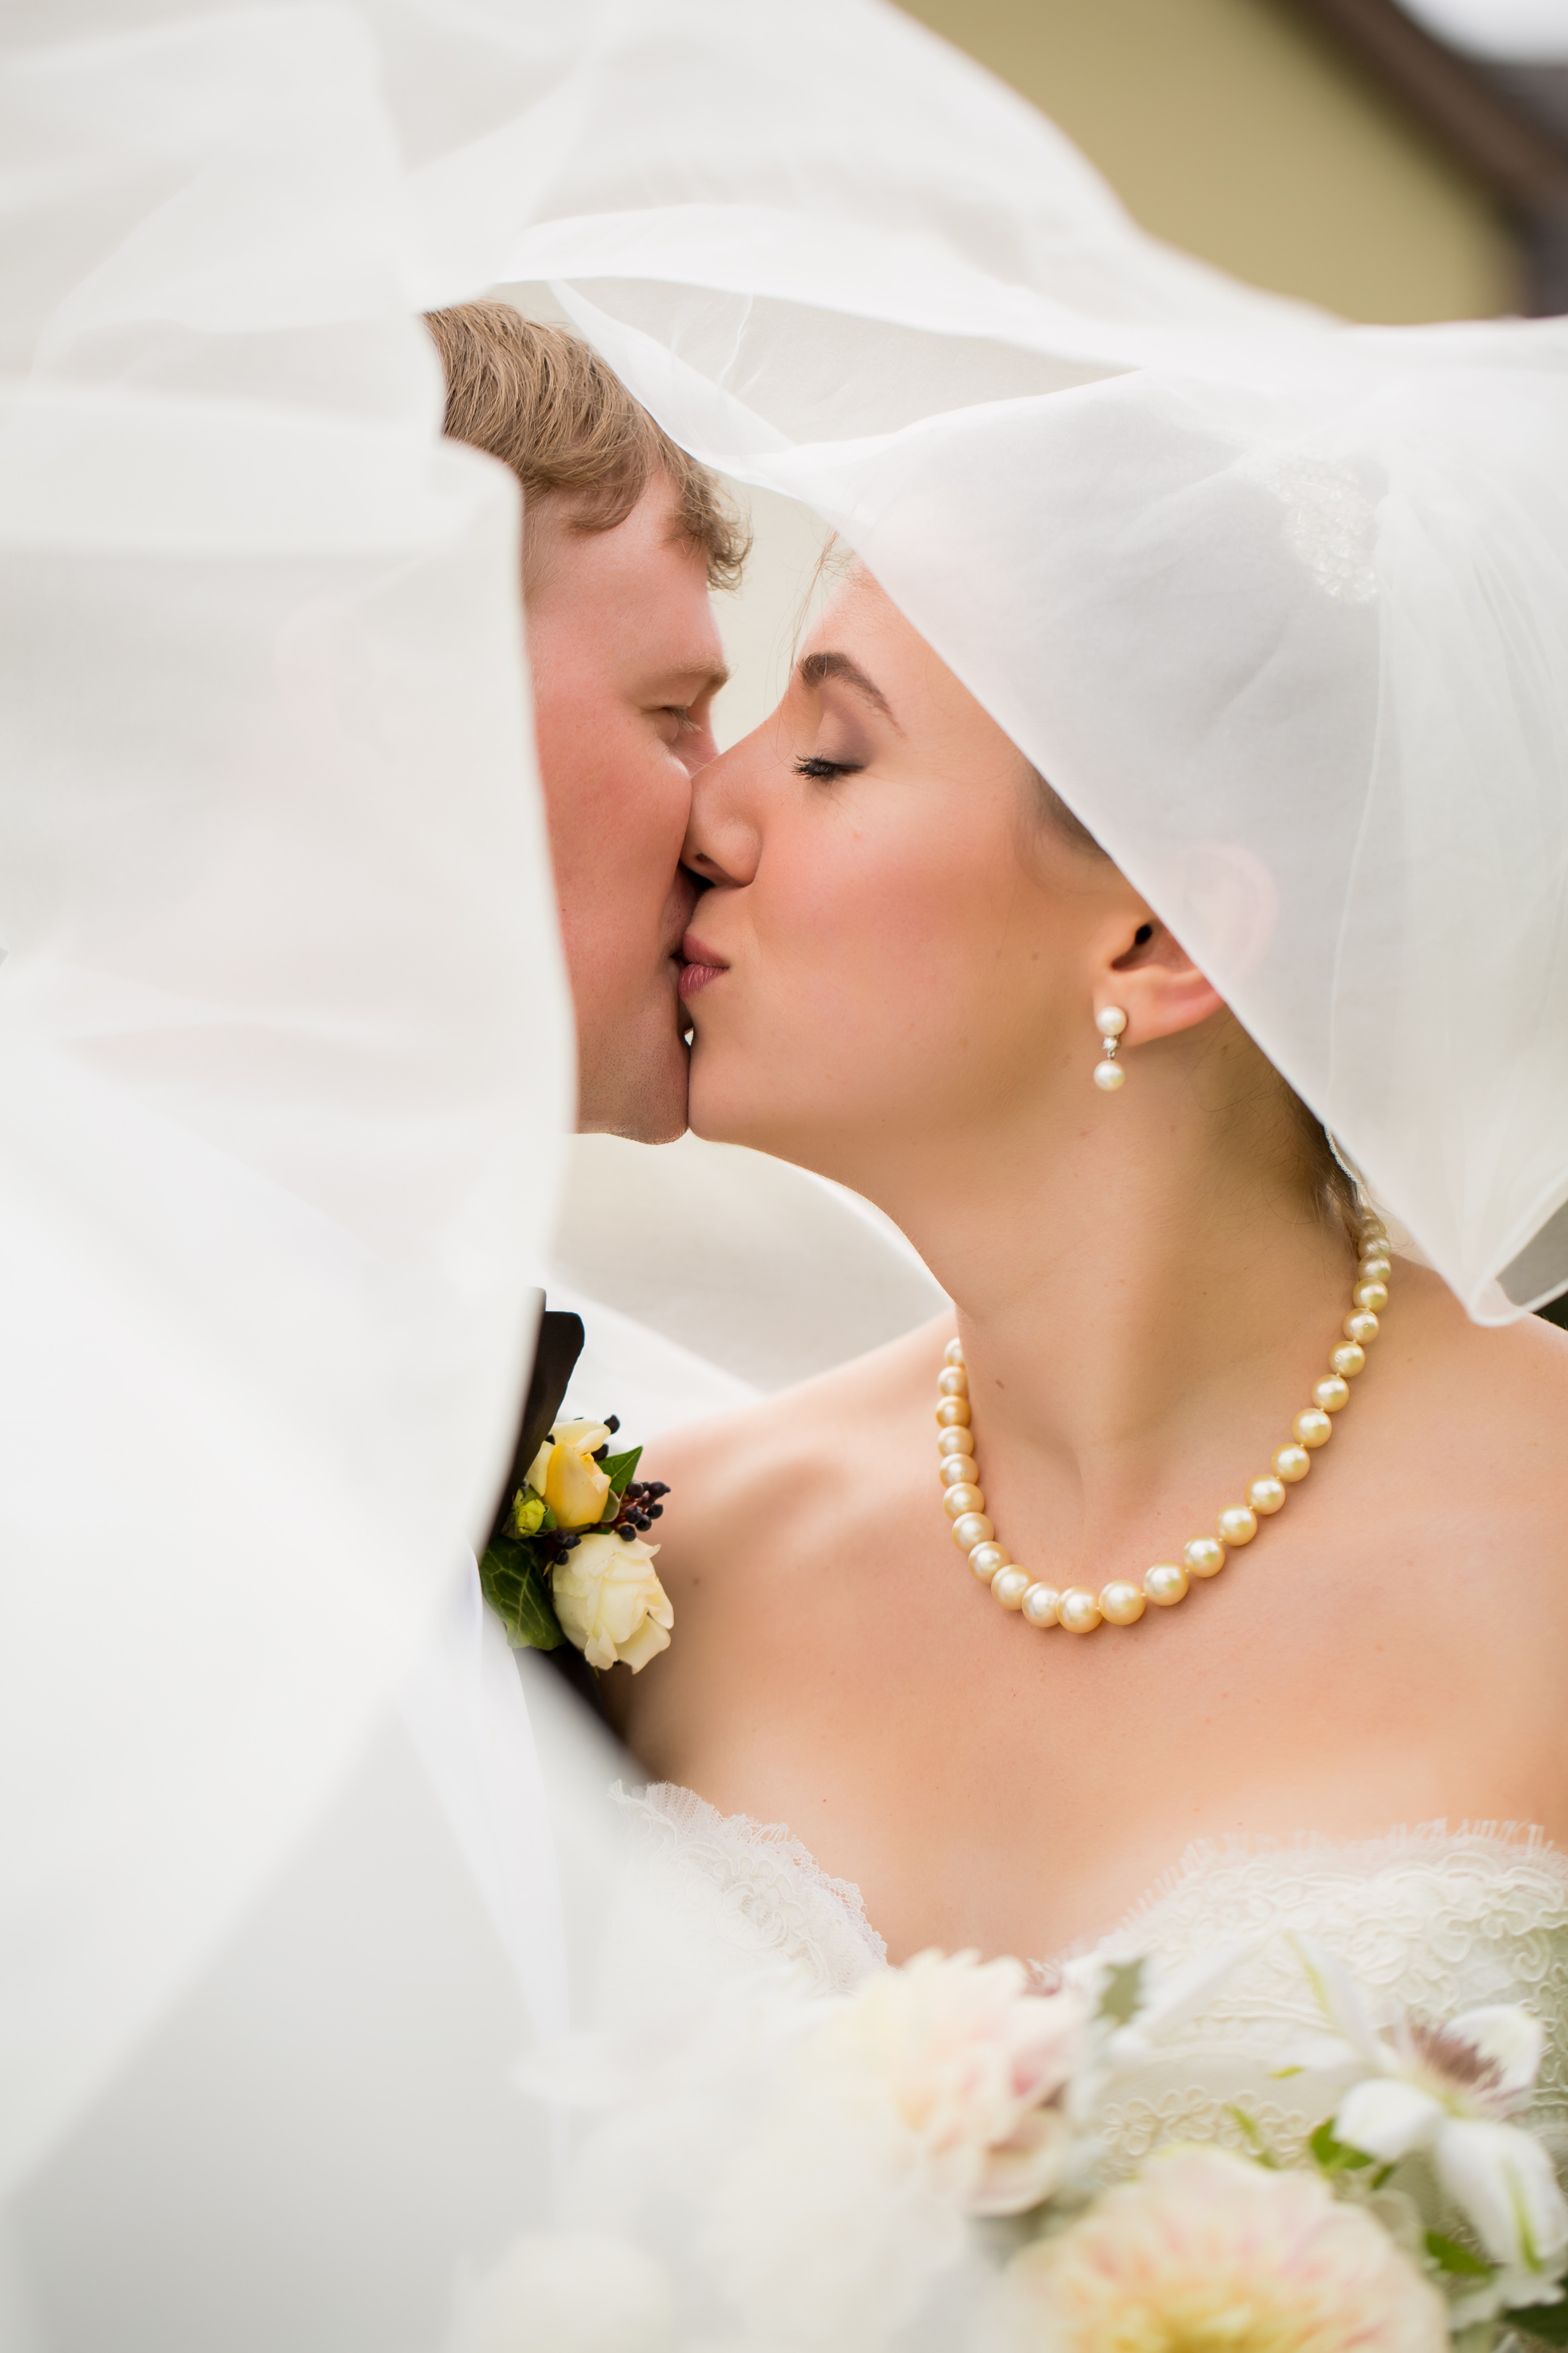 LaurenandMasonWedding-572.jpg